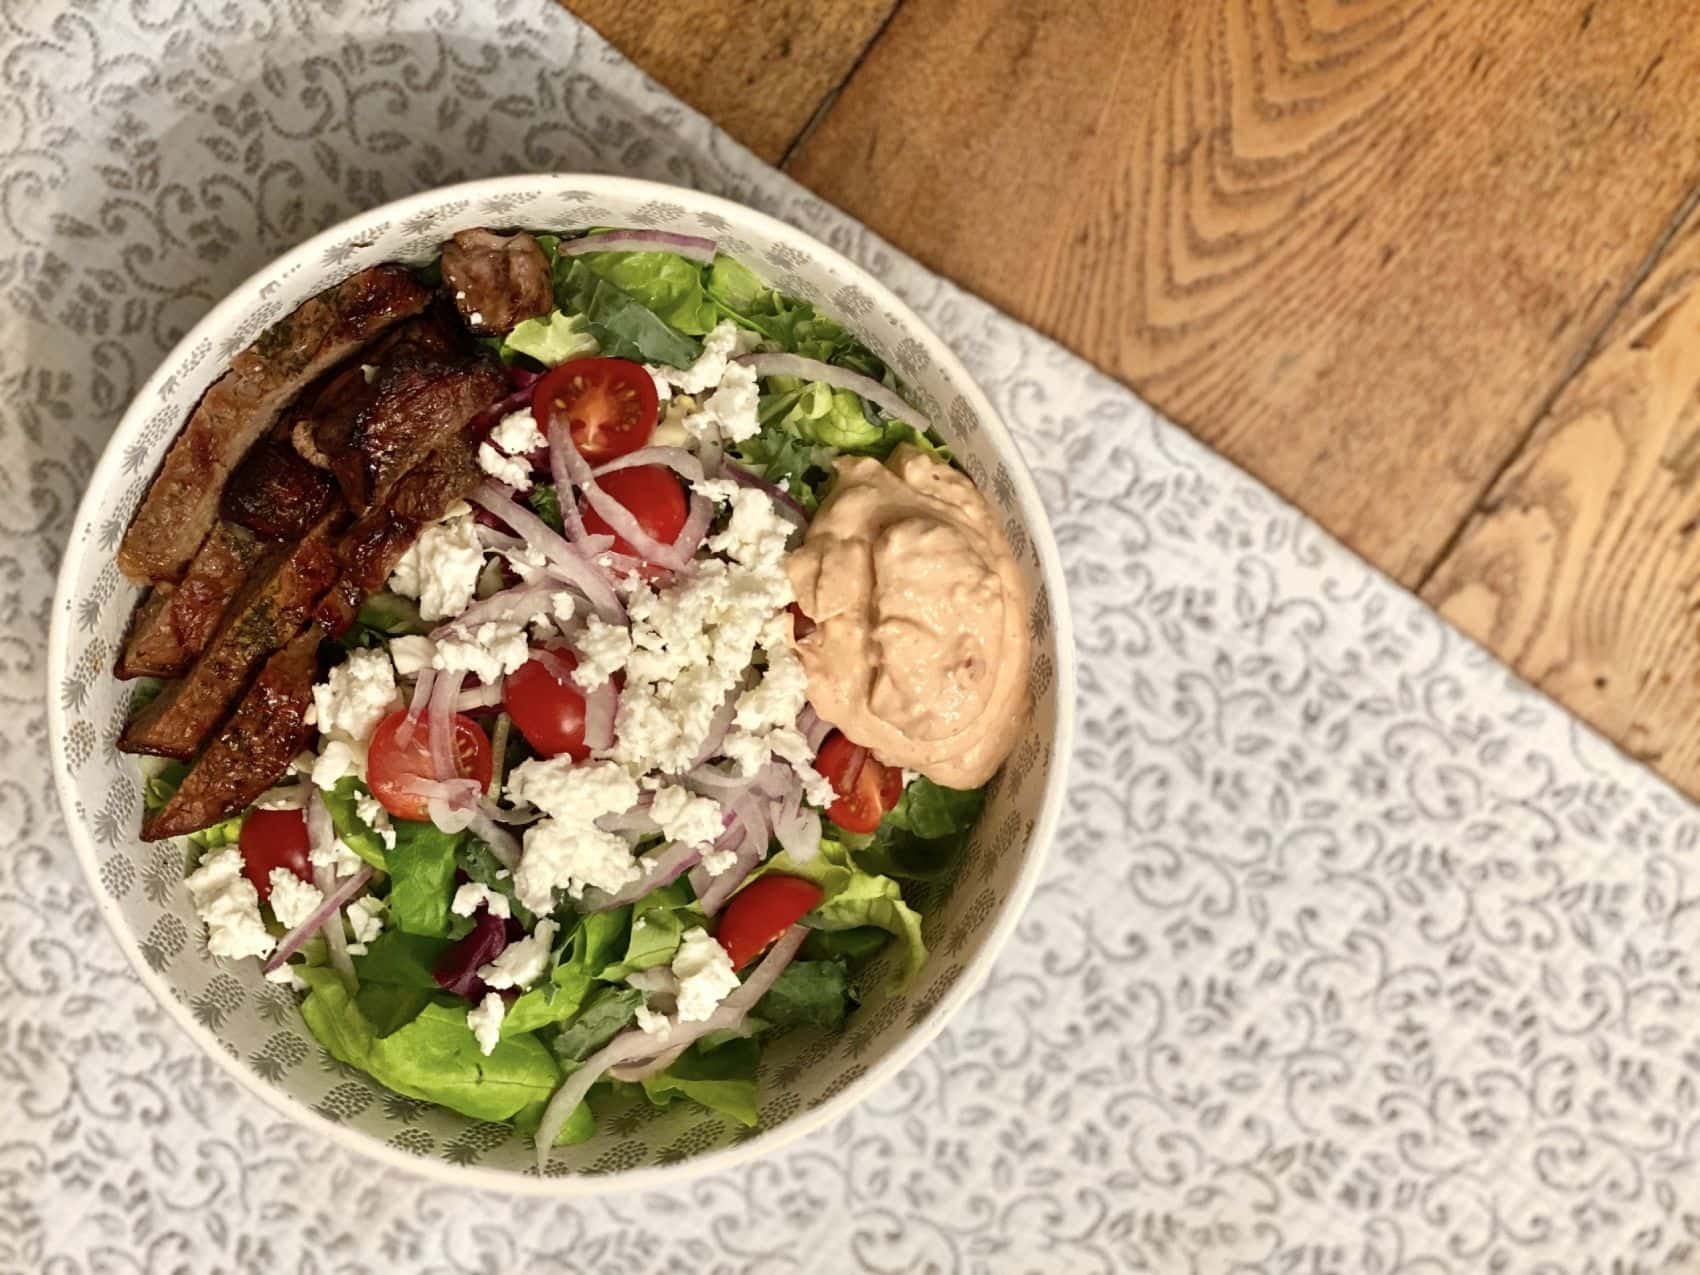 Recipe of the Week- Steak Salad with Chipotle Dressing